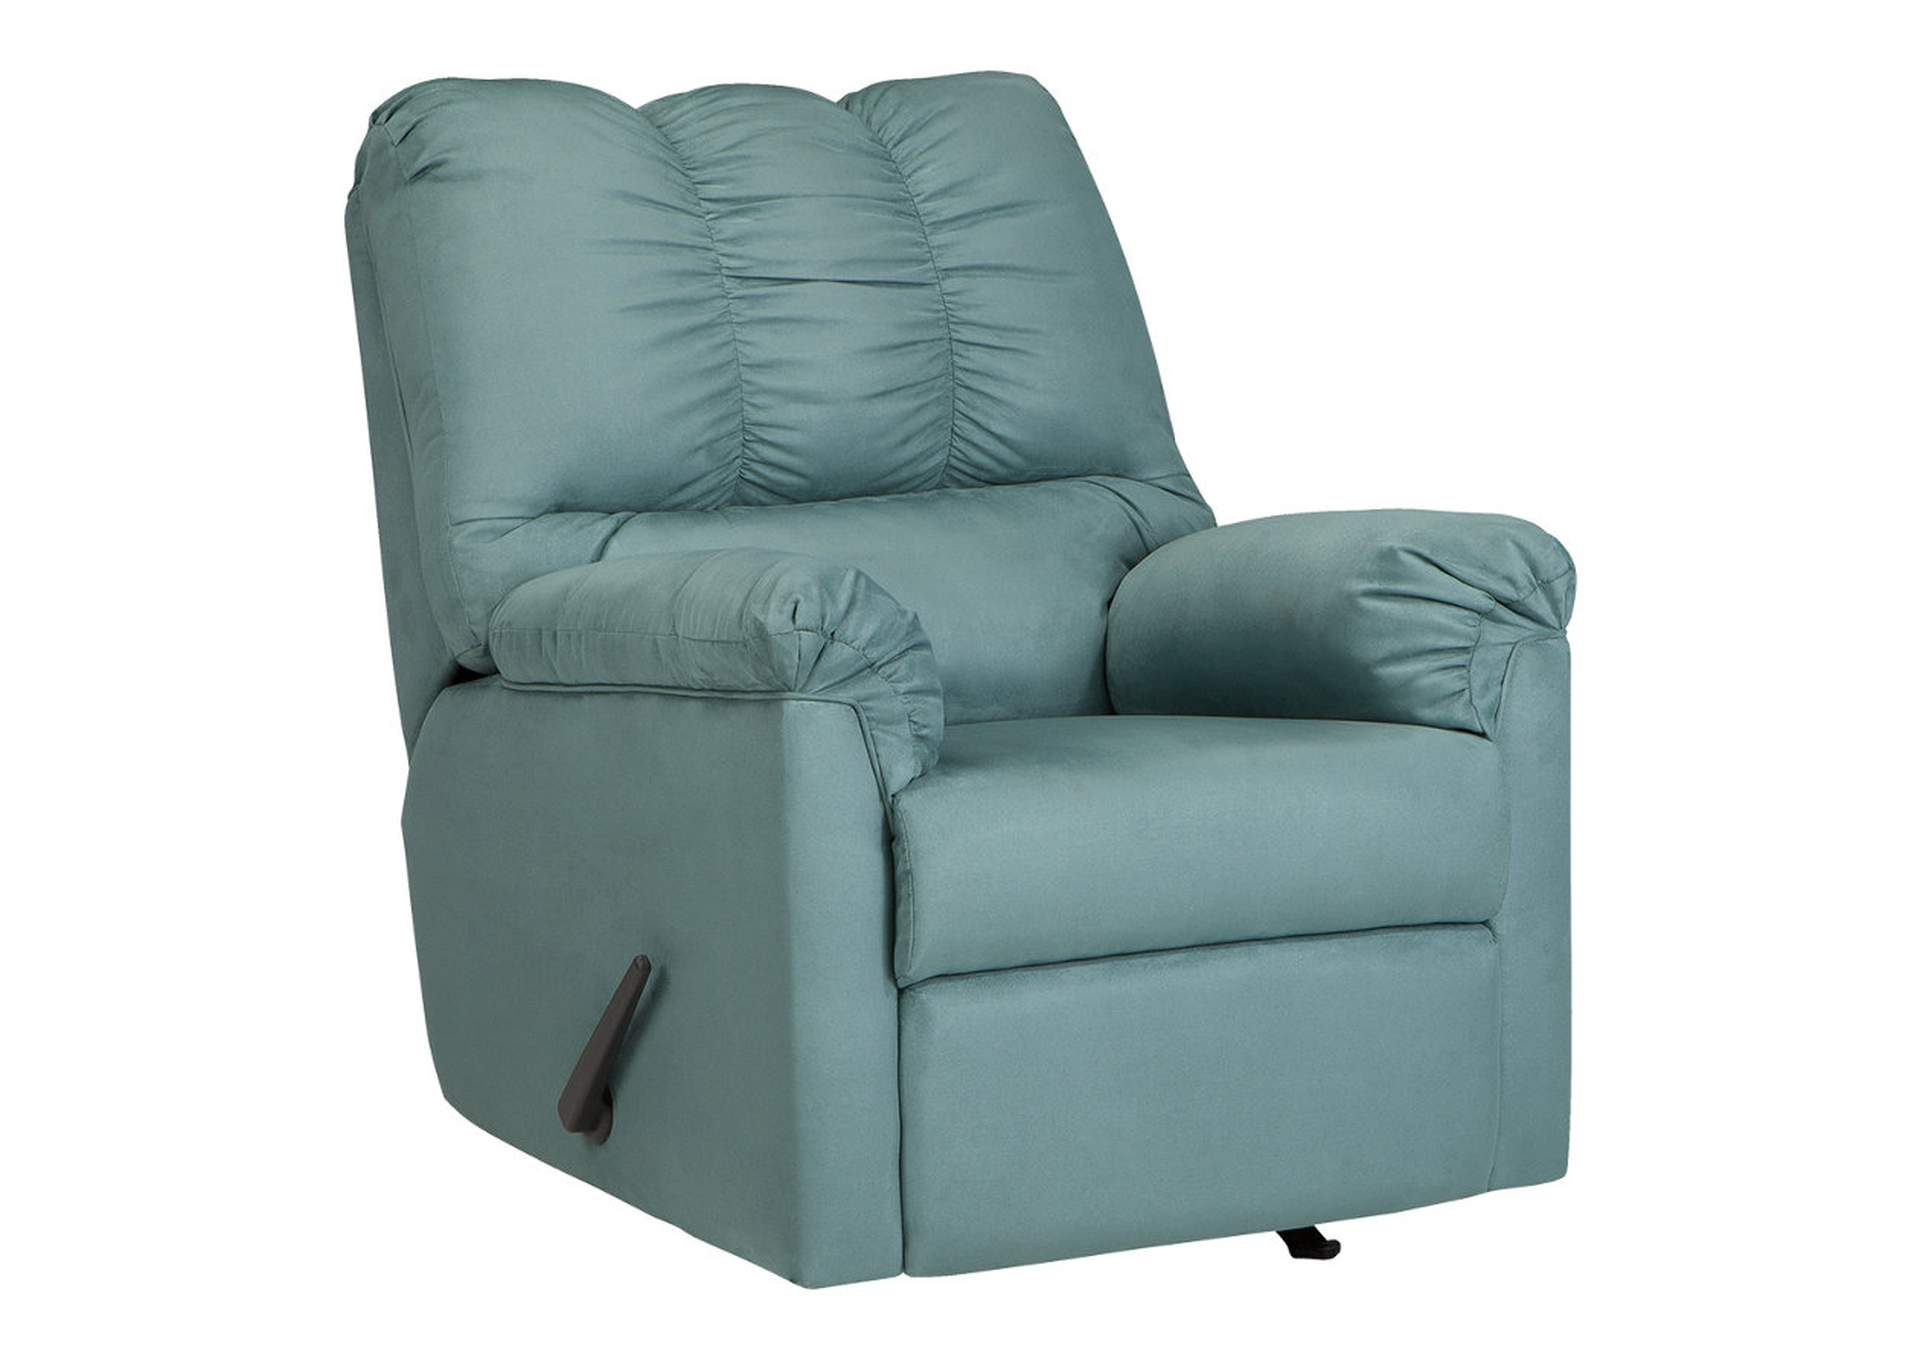 Darcy Sky Rocker Recliner,Signature Design By Ashley